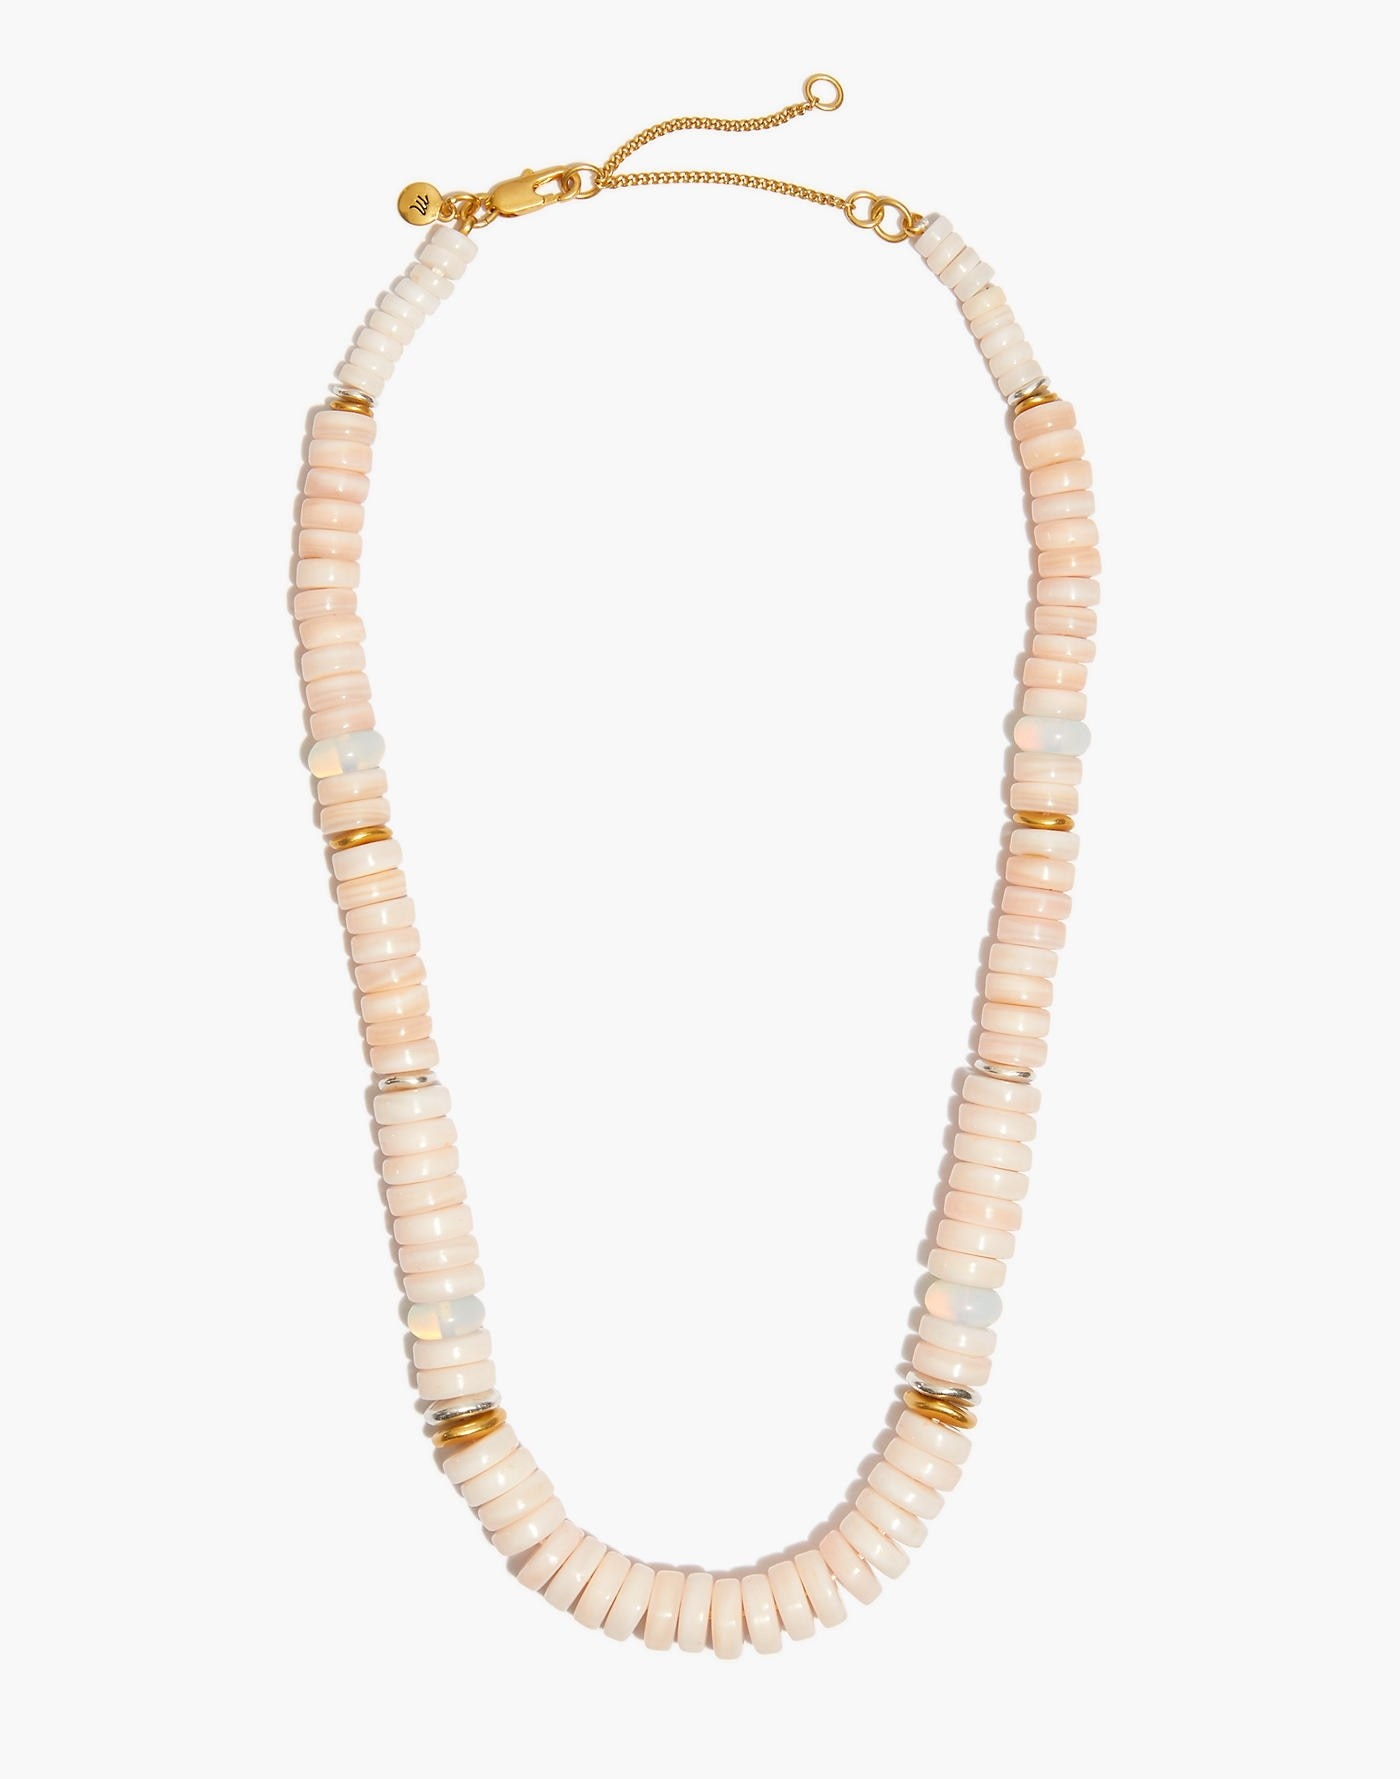 The beaded necklace with a selection of light pink and gold beads